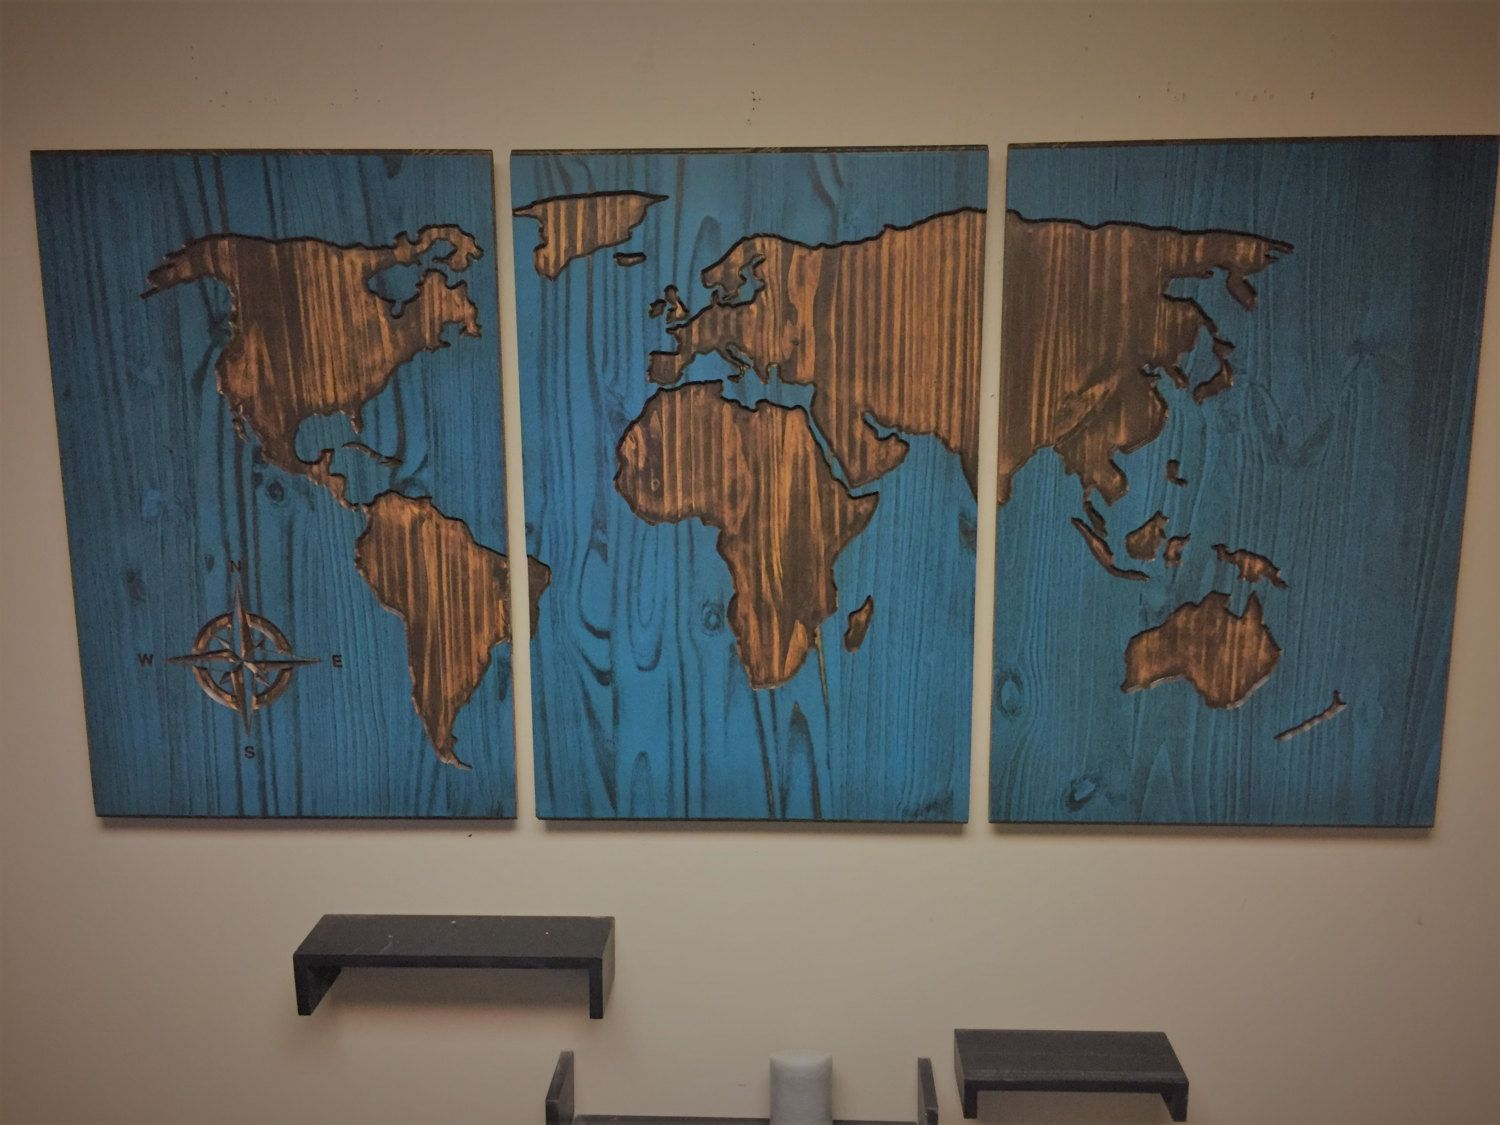 World map wood wall art carved custom home decor wooden map world map wood wall art carved custom home decor wooden map wooden gumiabroncs Image collections